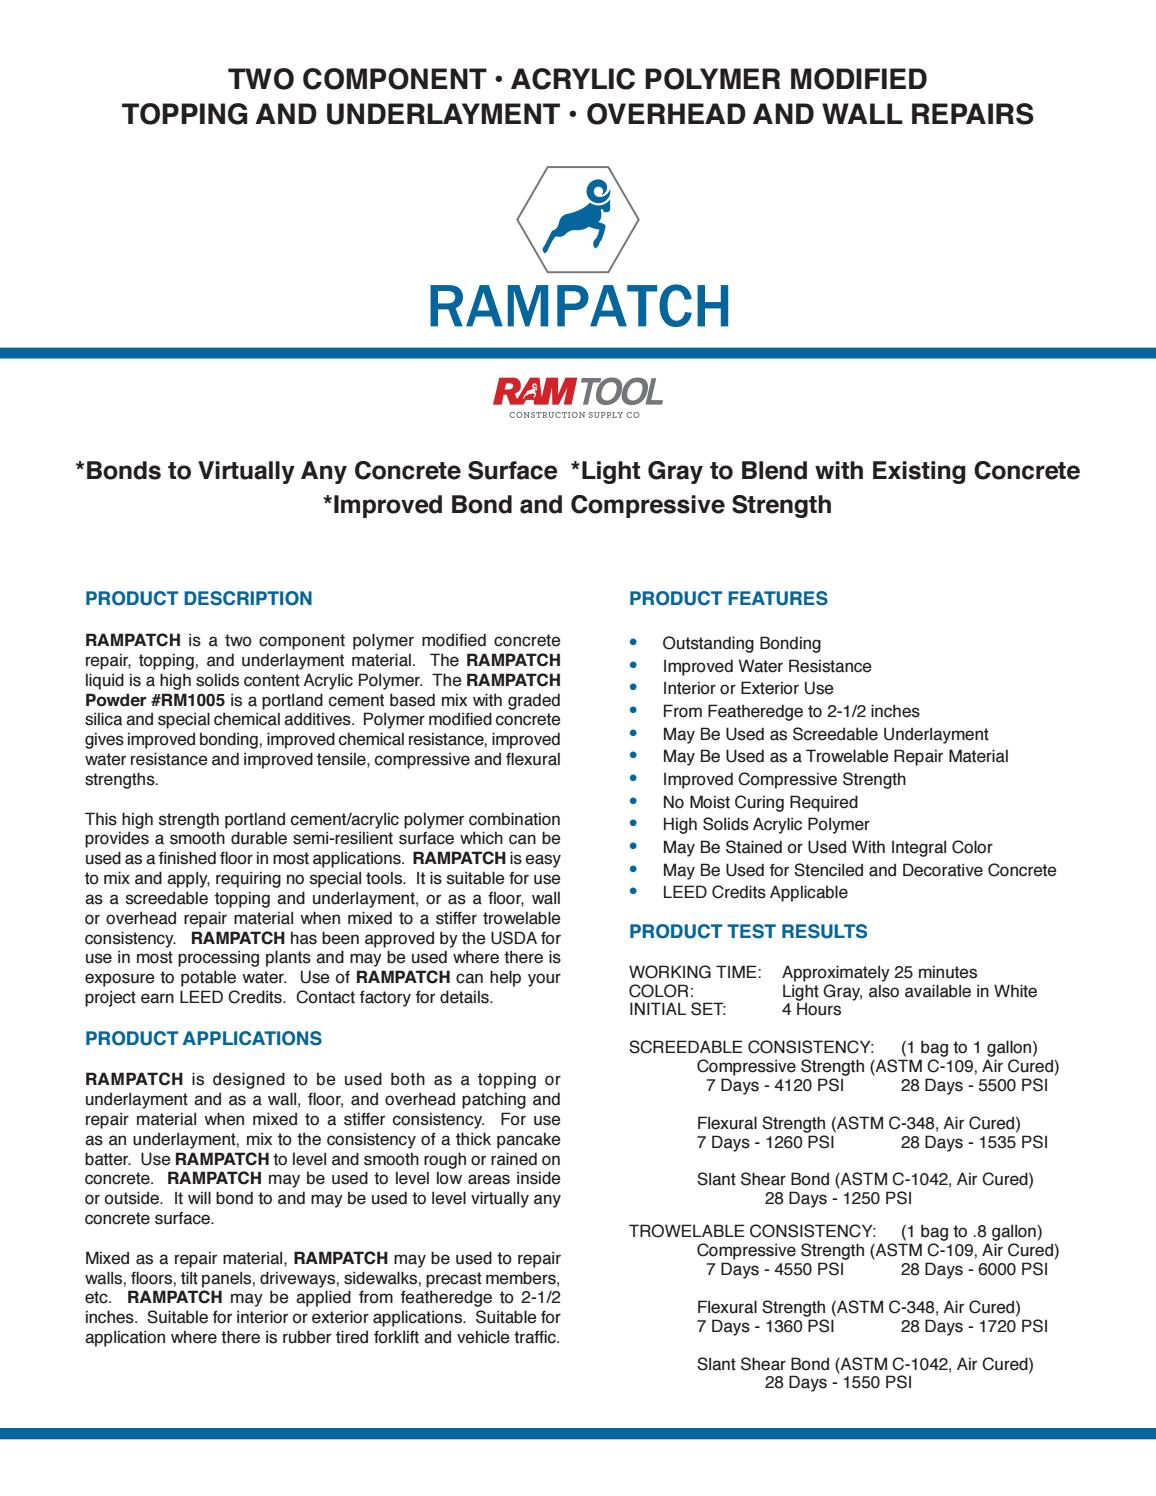 RamPatch Tech Data & SDS by Ram Tool Construction Supply Co